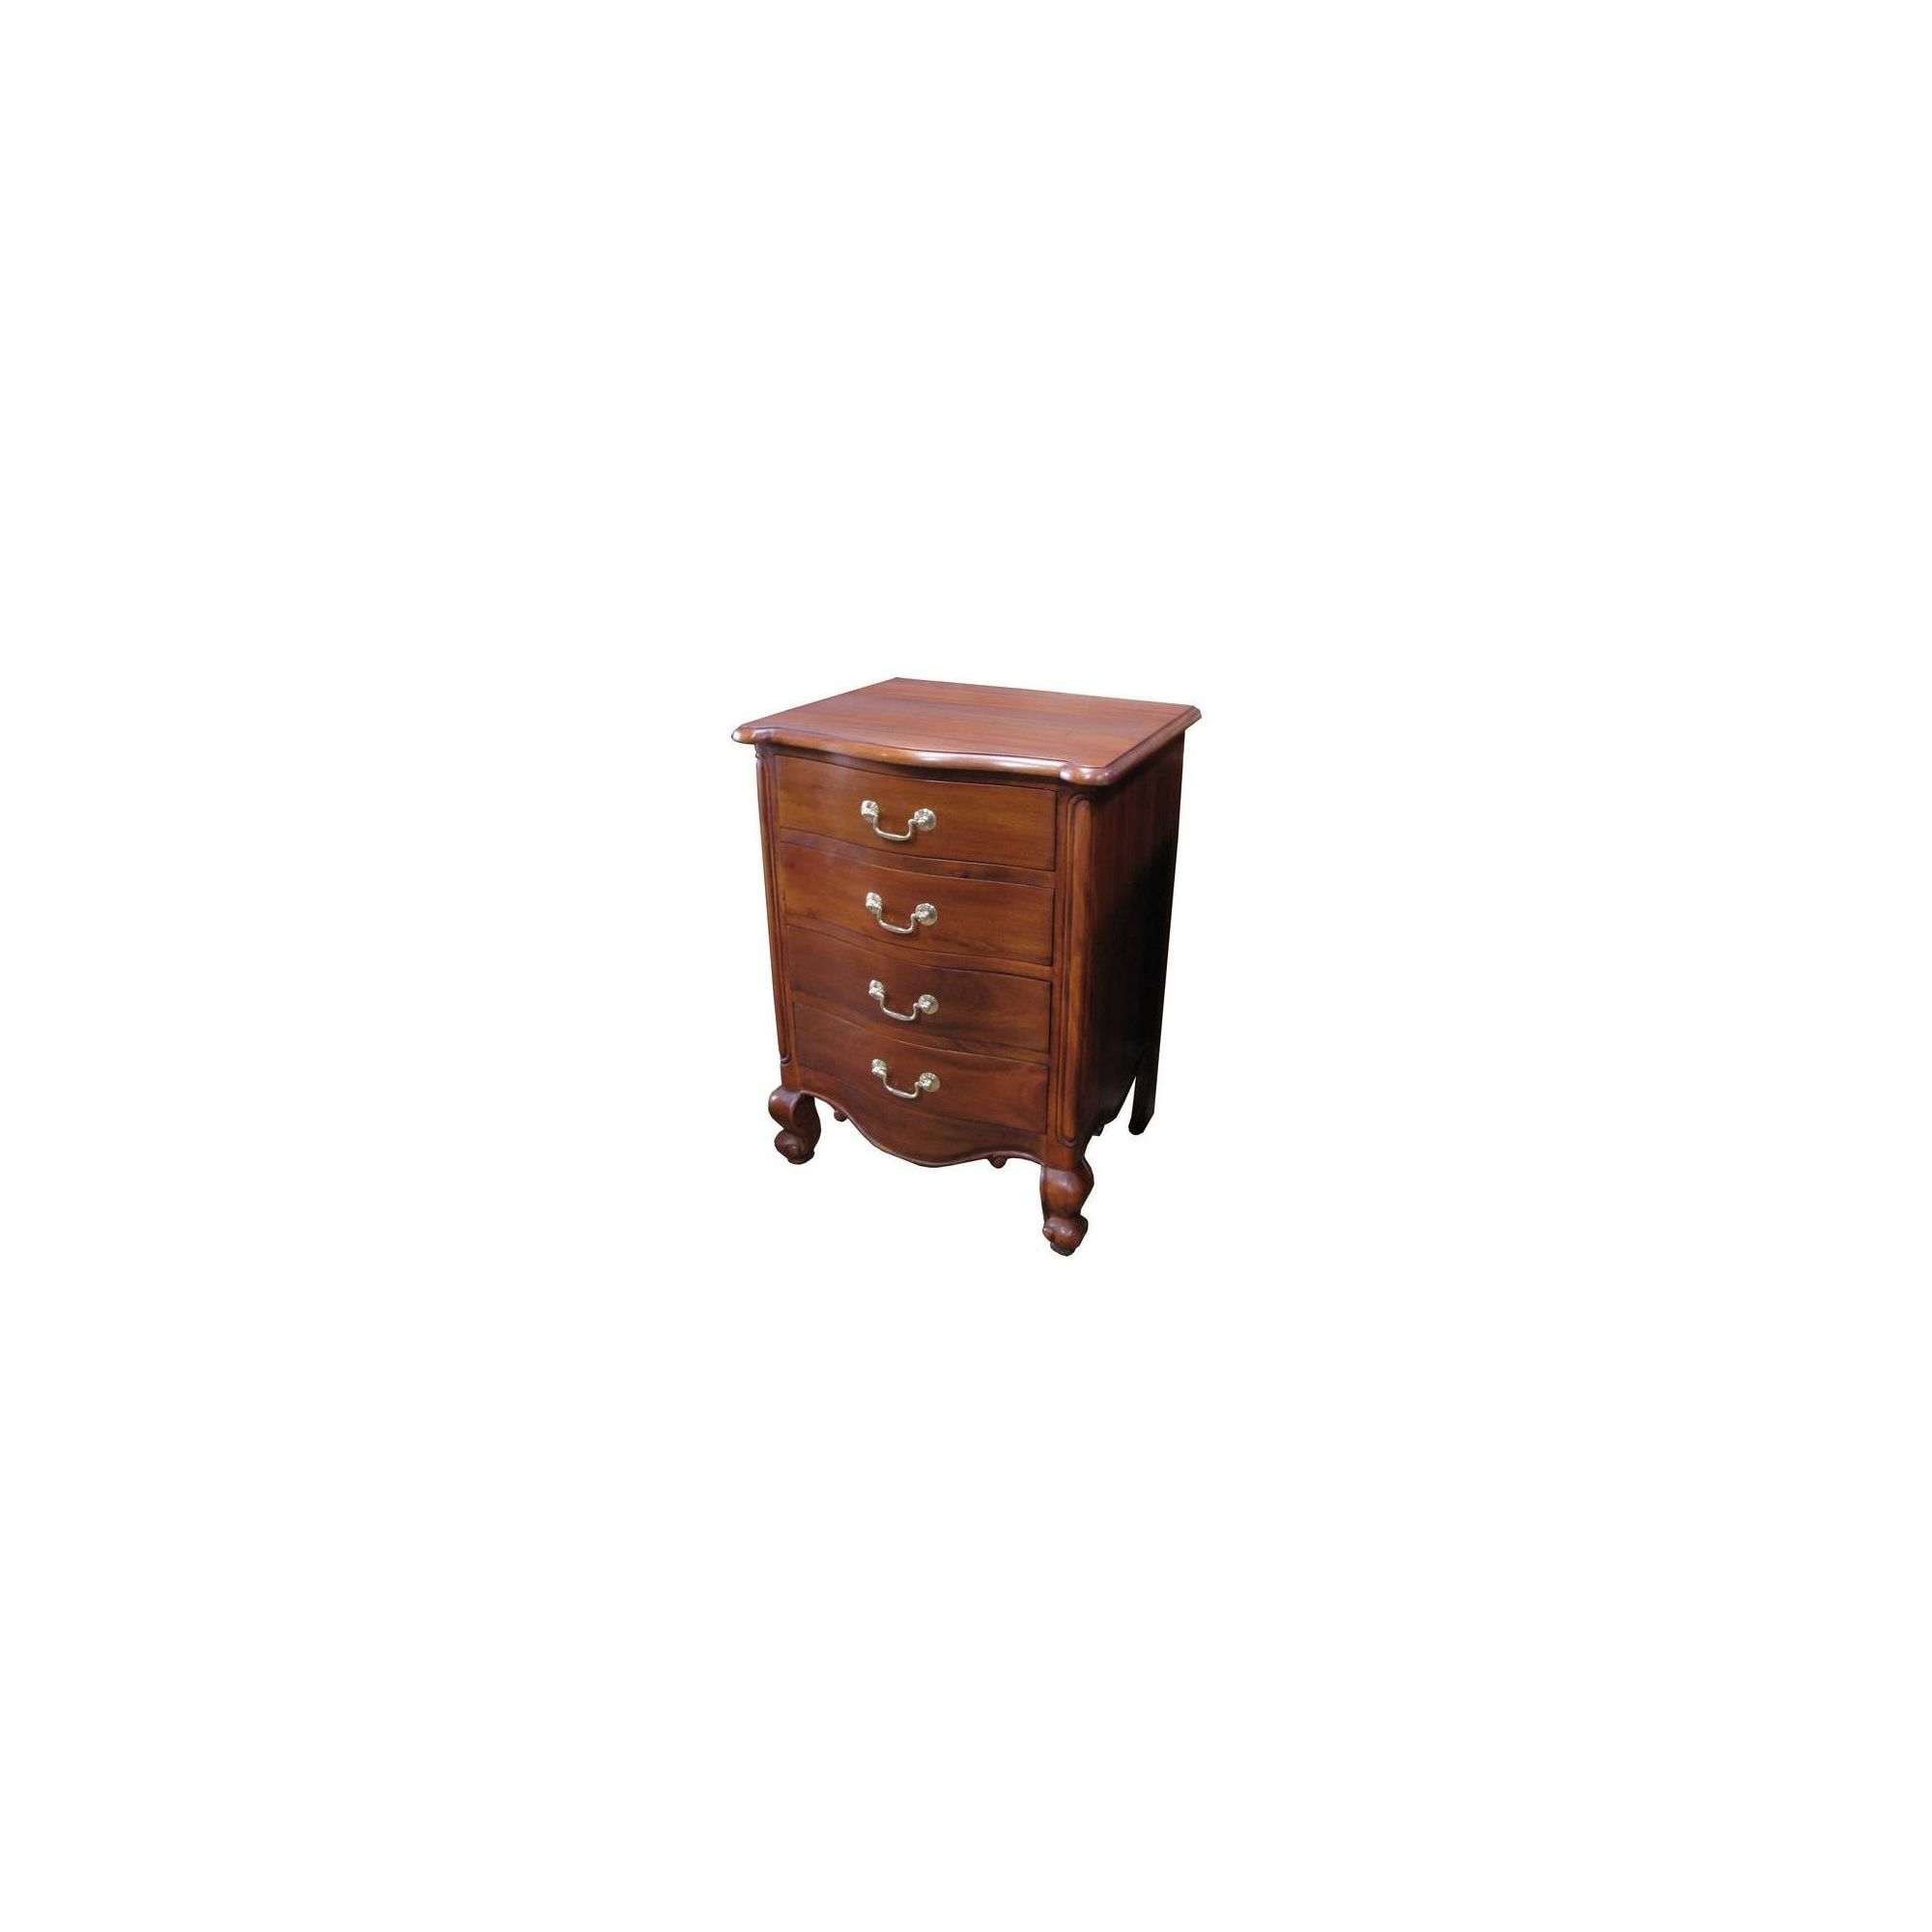 Lock stock and barrel Mahogany Louis 4 Drawer Bedside Table in Mahogany - Wax at Tesco Direct